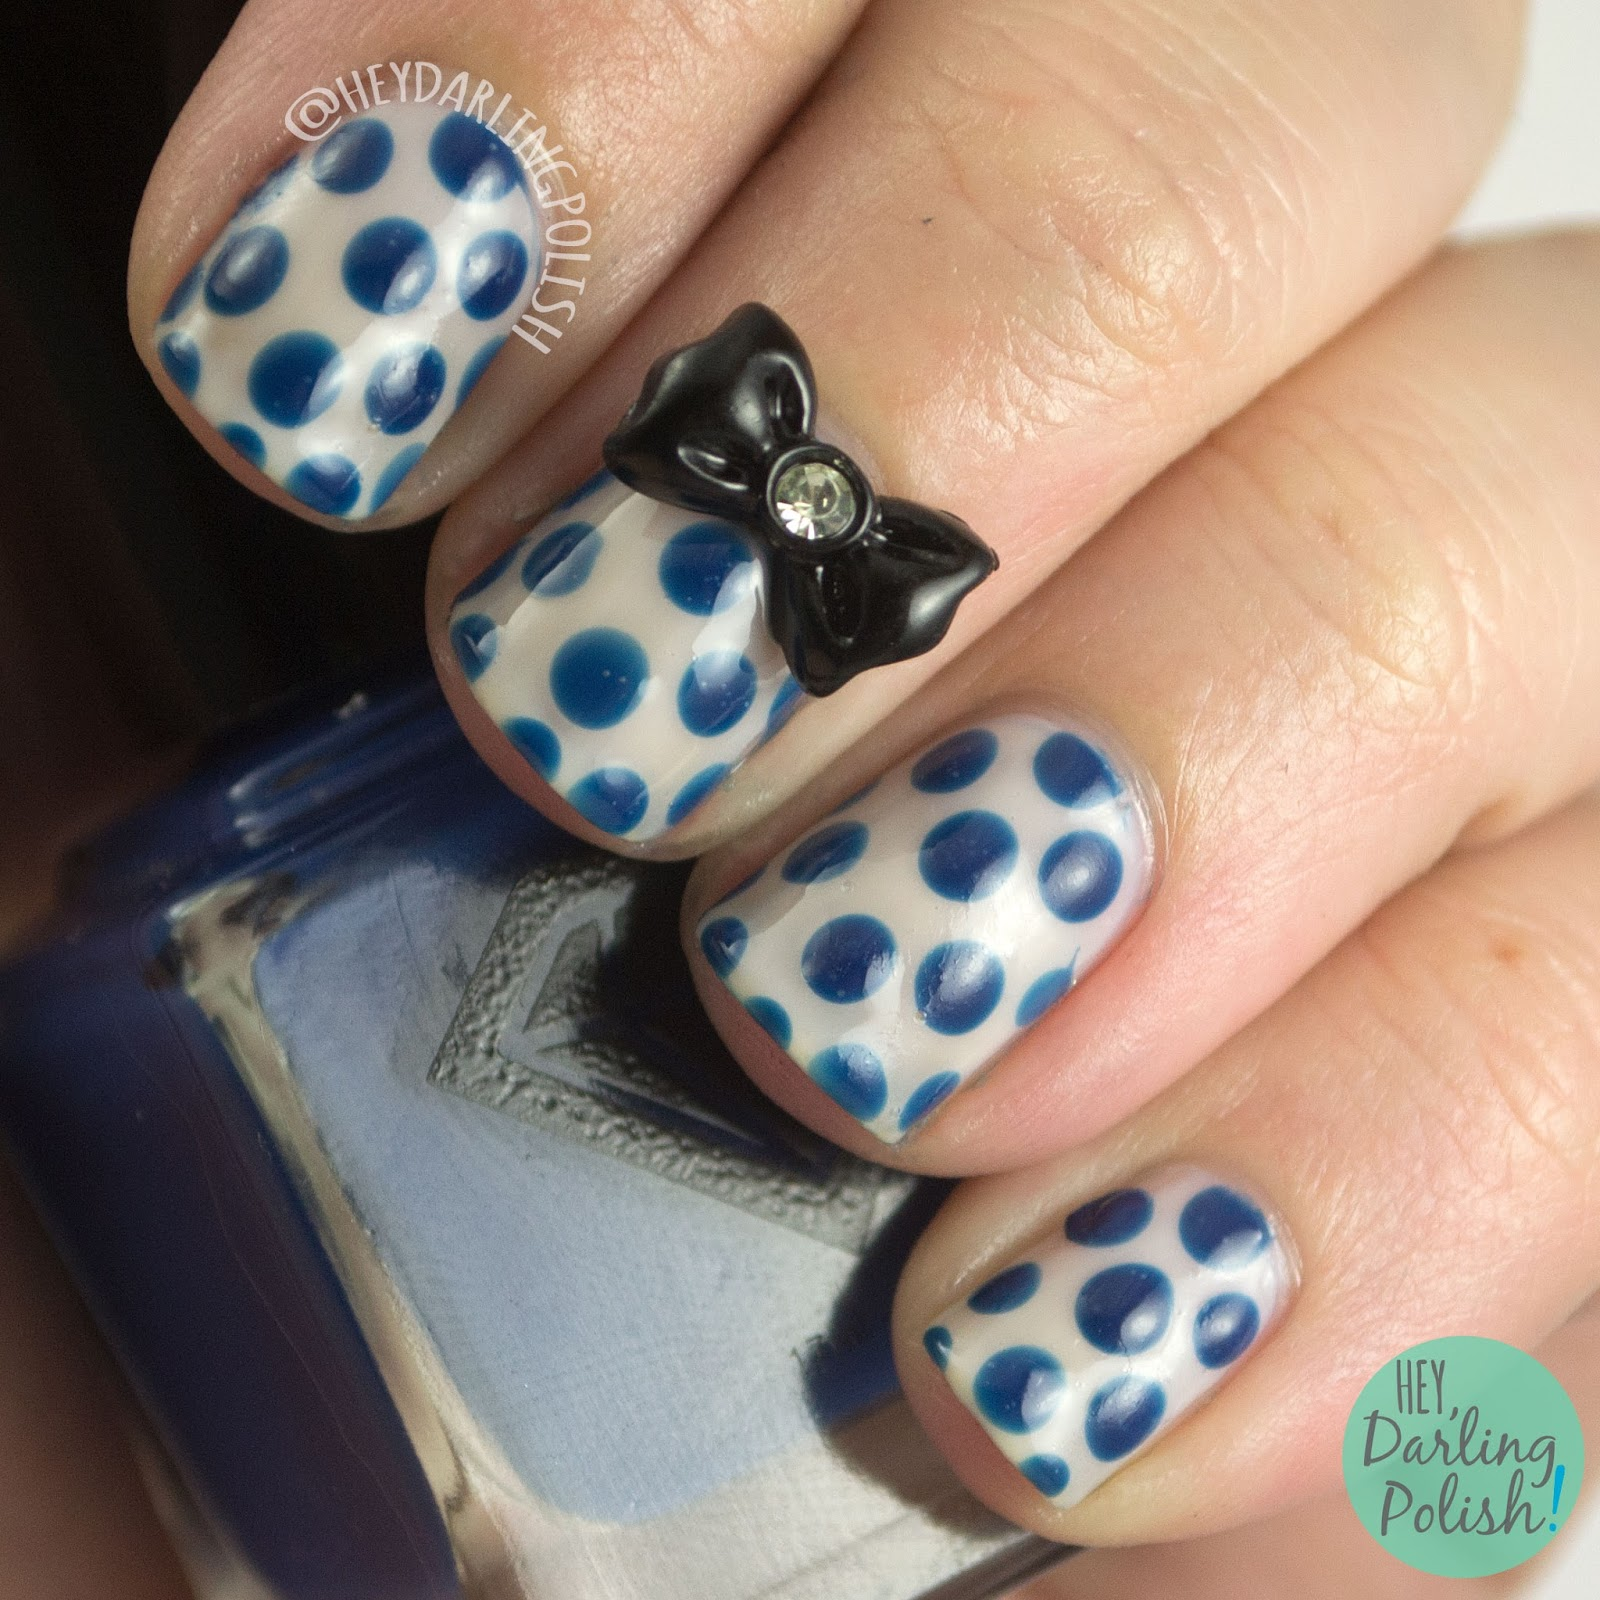 nails, nail art, nail polish, luxe lacquers, hey darling polish, cream, polka dots, blue, bow